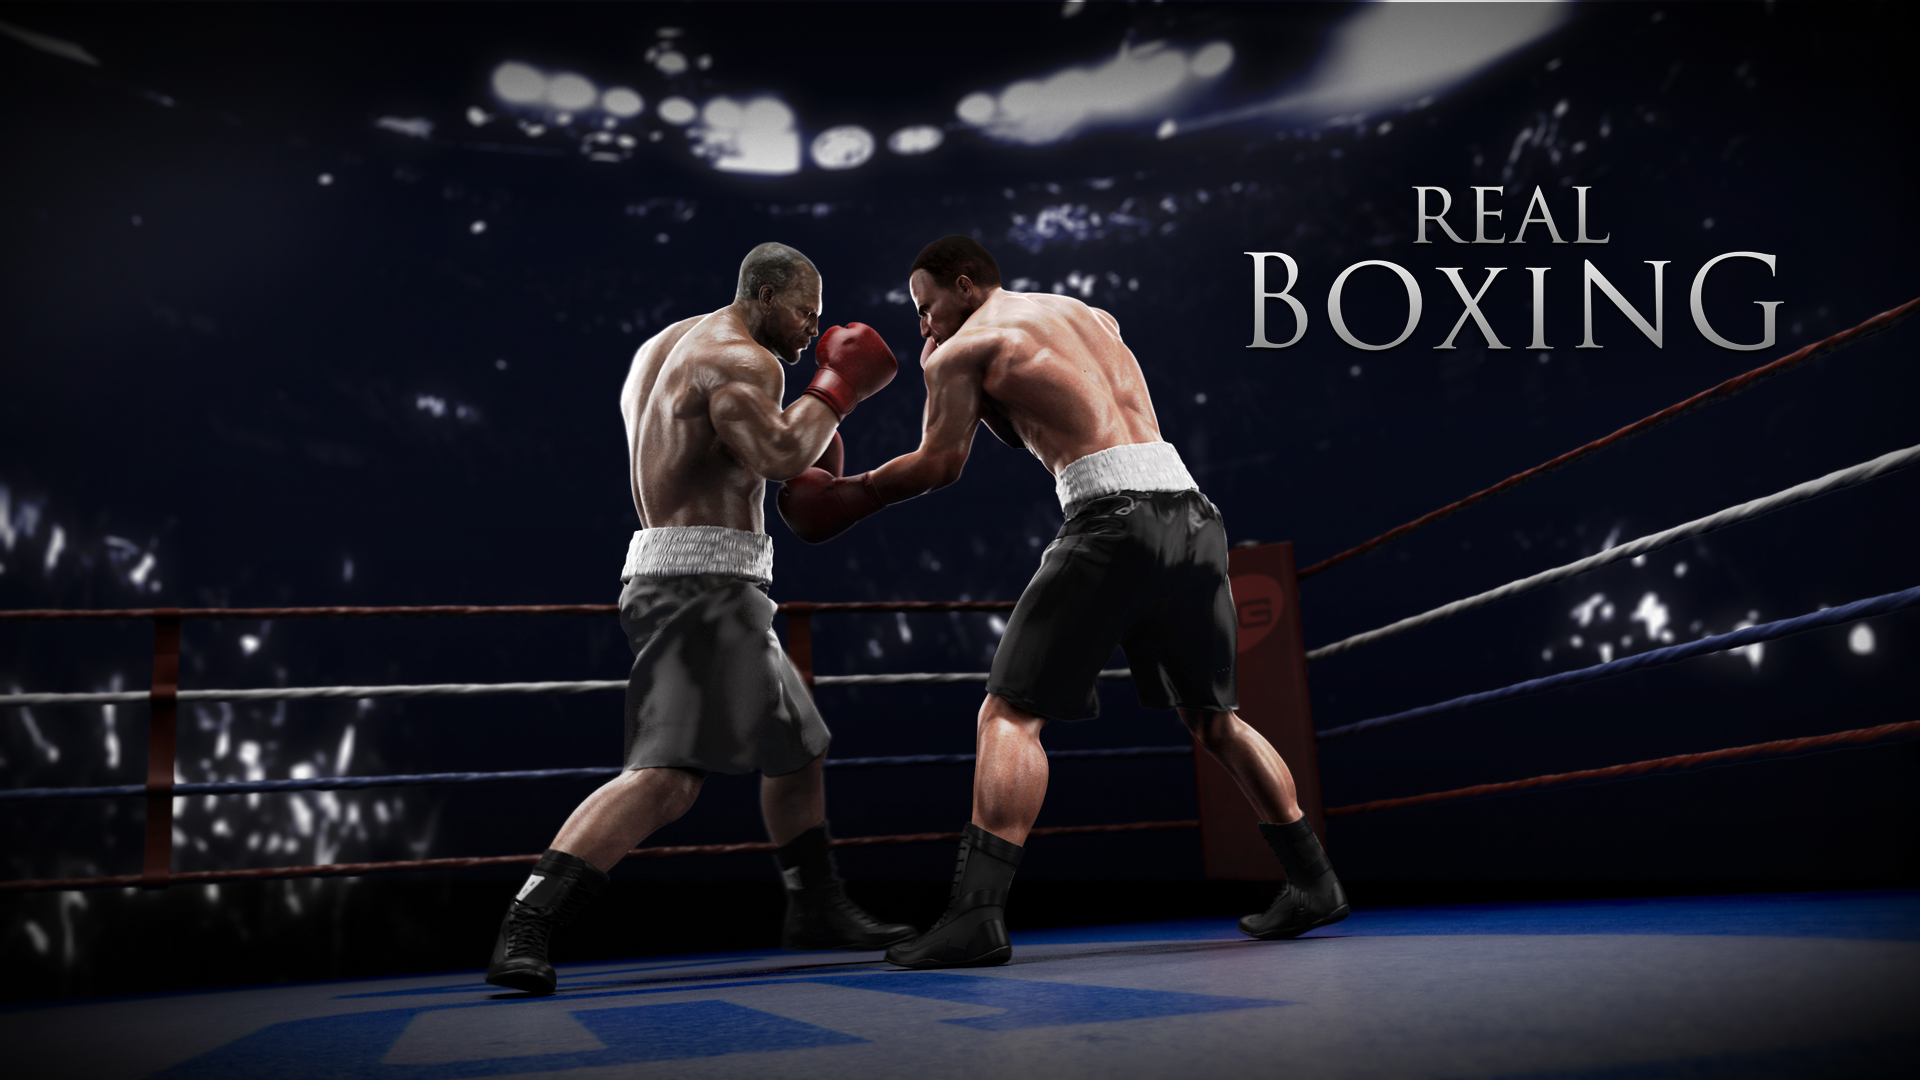 Boxing Wallpaper